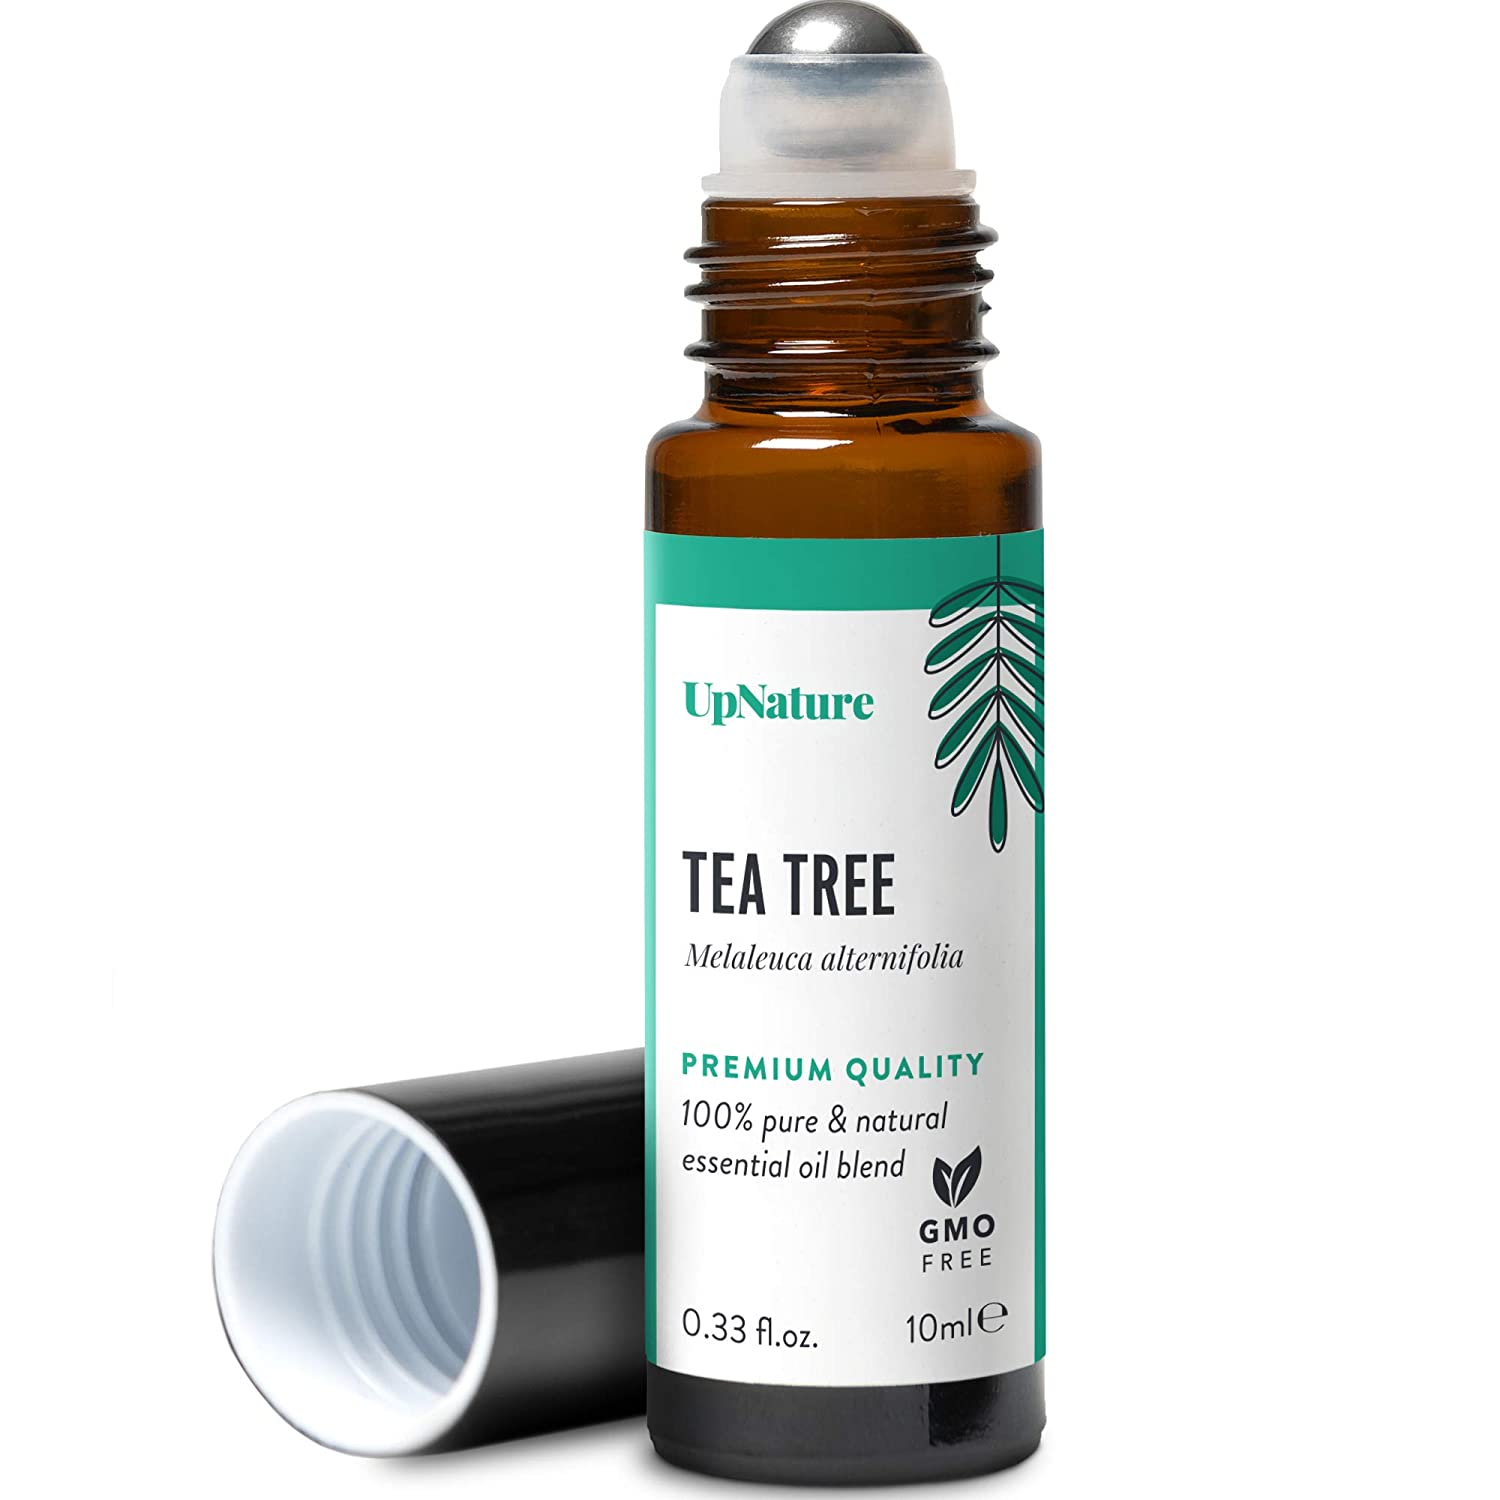 Tea Tree Oil Roll-On - Tea Tree Essential Oil Rollerball - Facial Oil for Clear Skin, Healthy Toenail - Aromatherapy, Therapeutic Grade, Pre-Diluted, Non-GMO